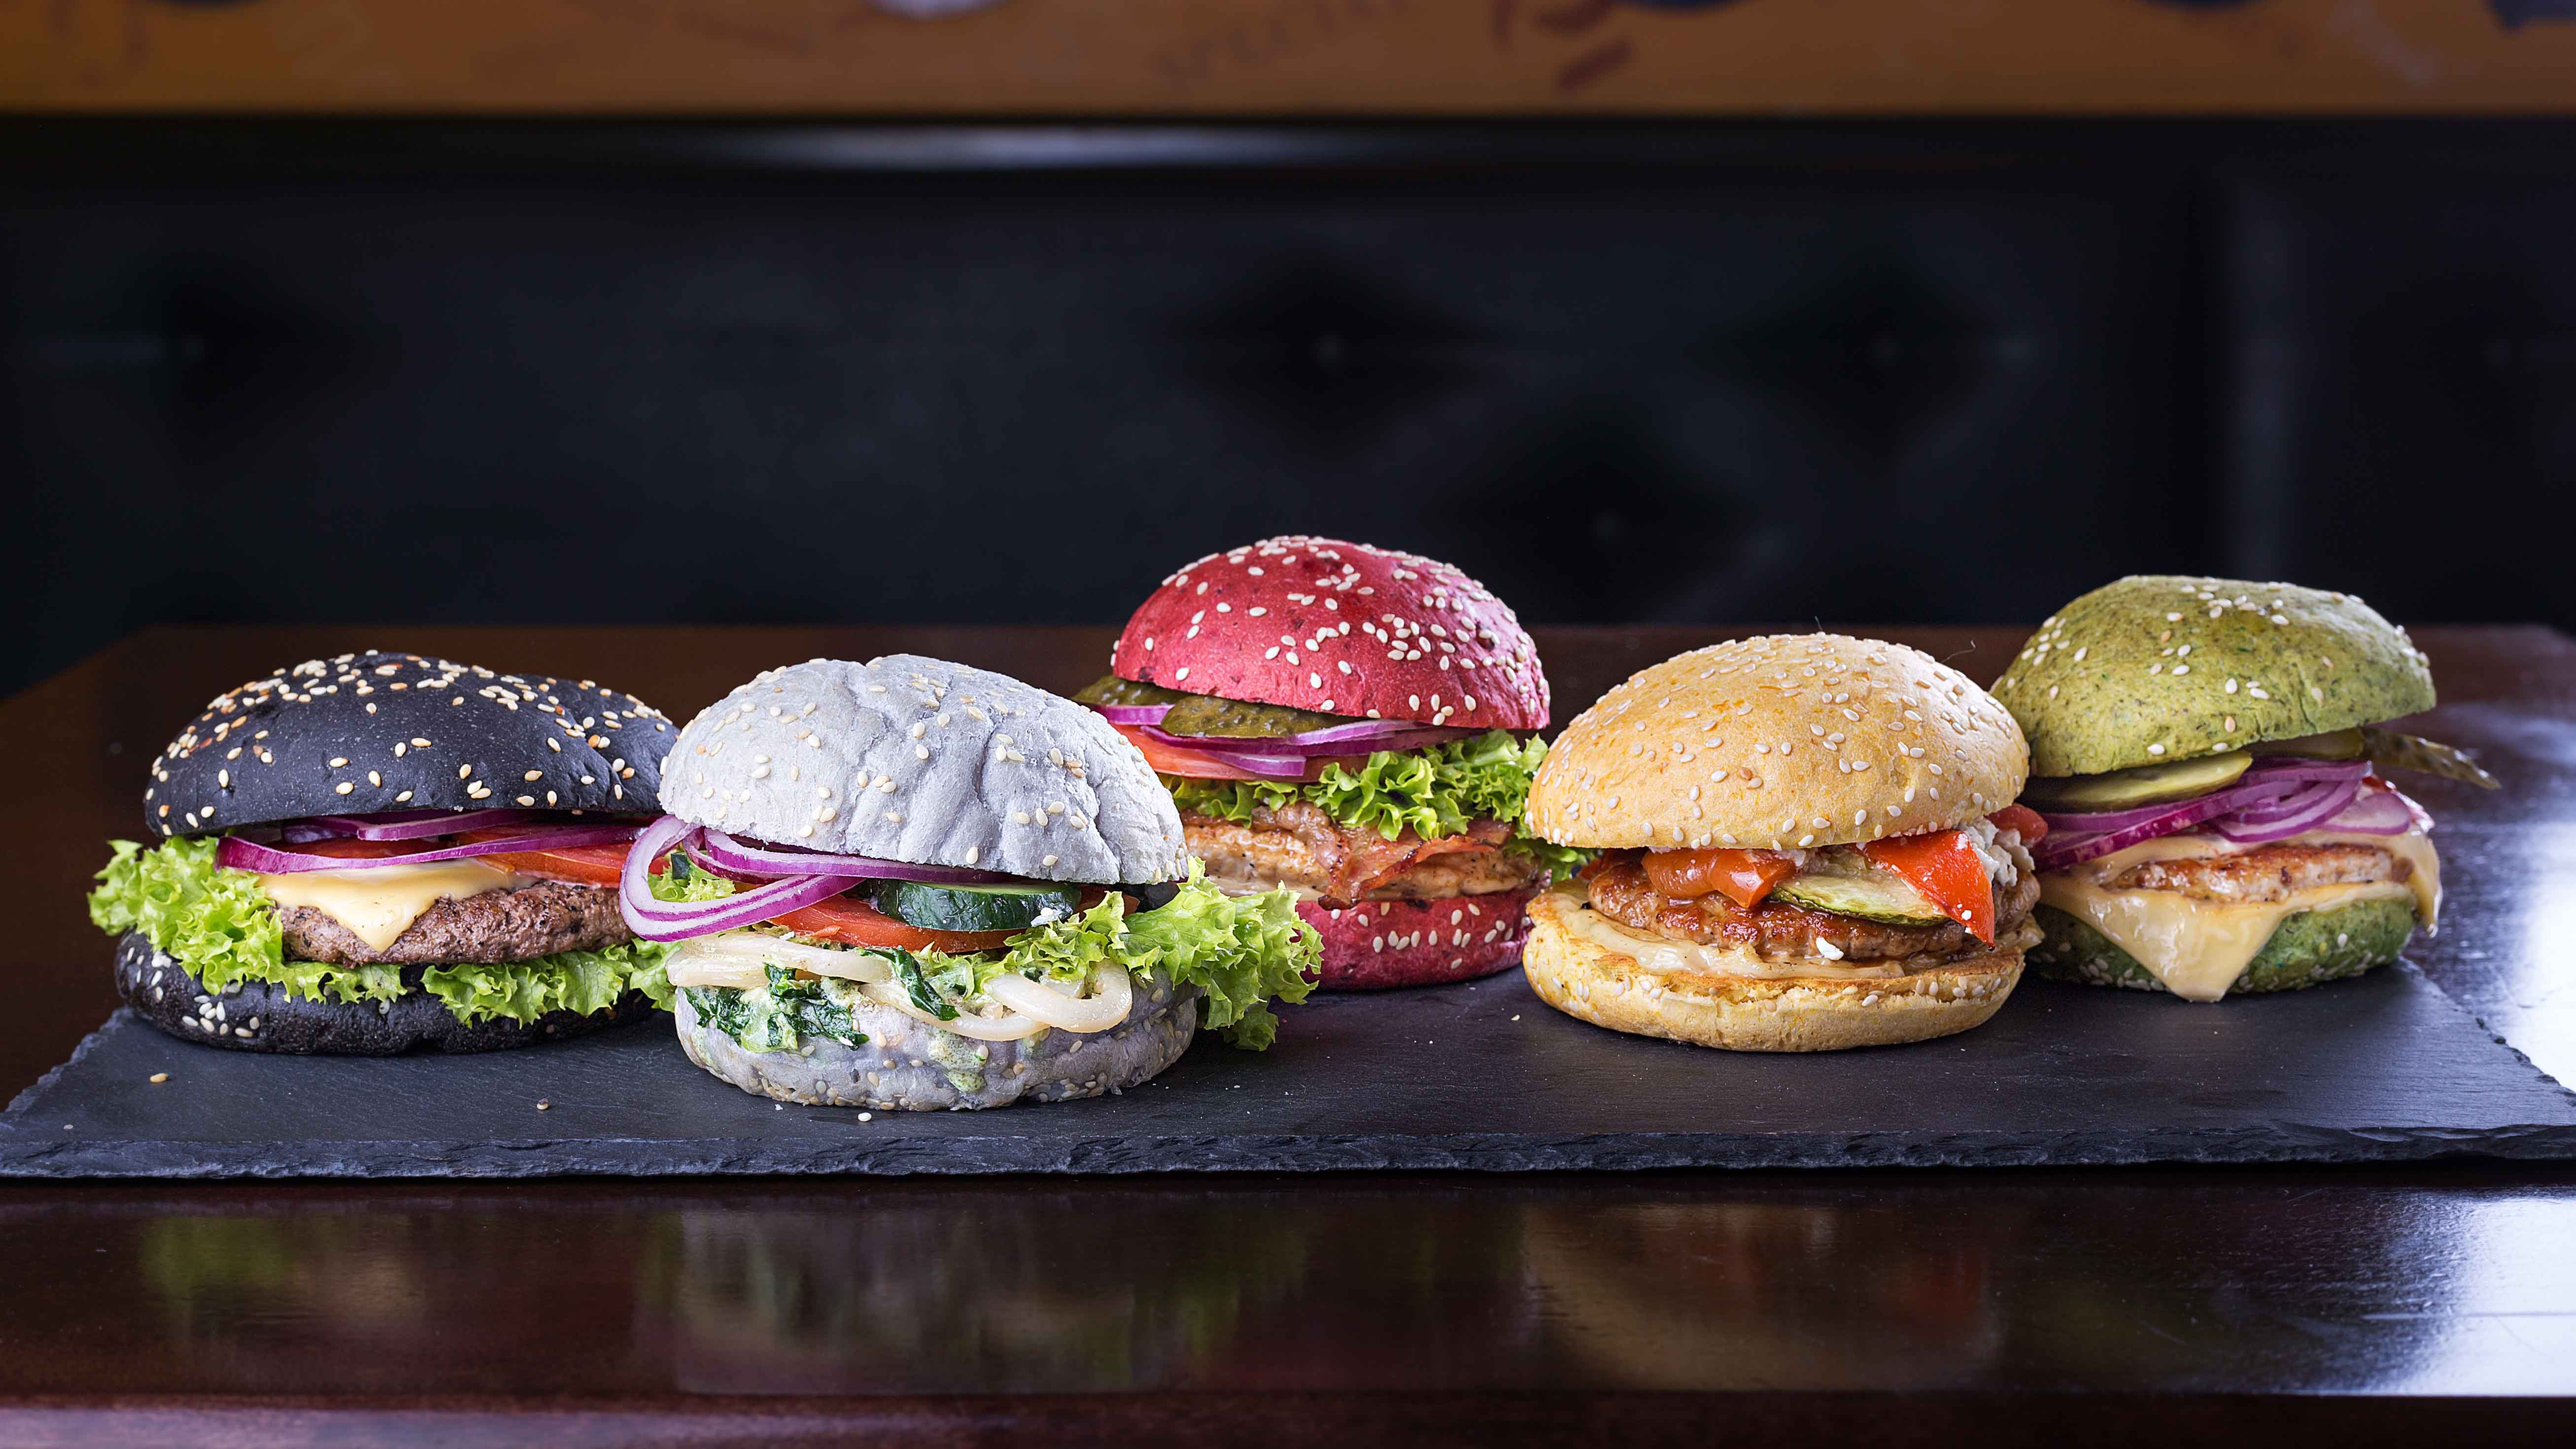 Assorted colored burgers